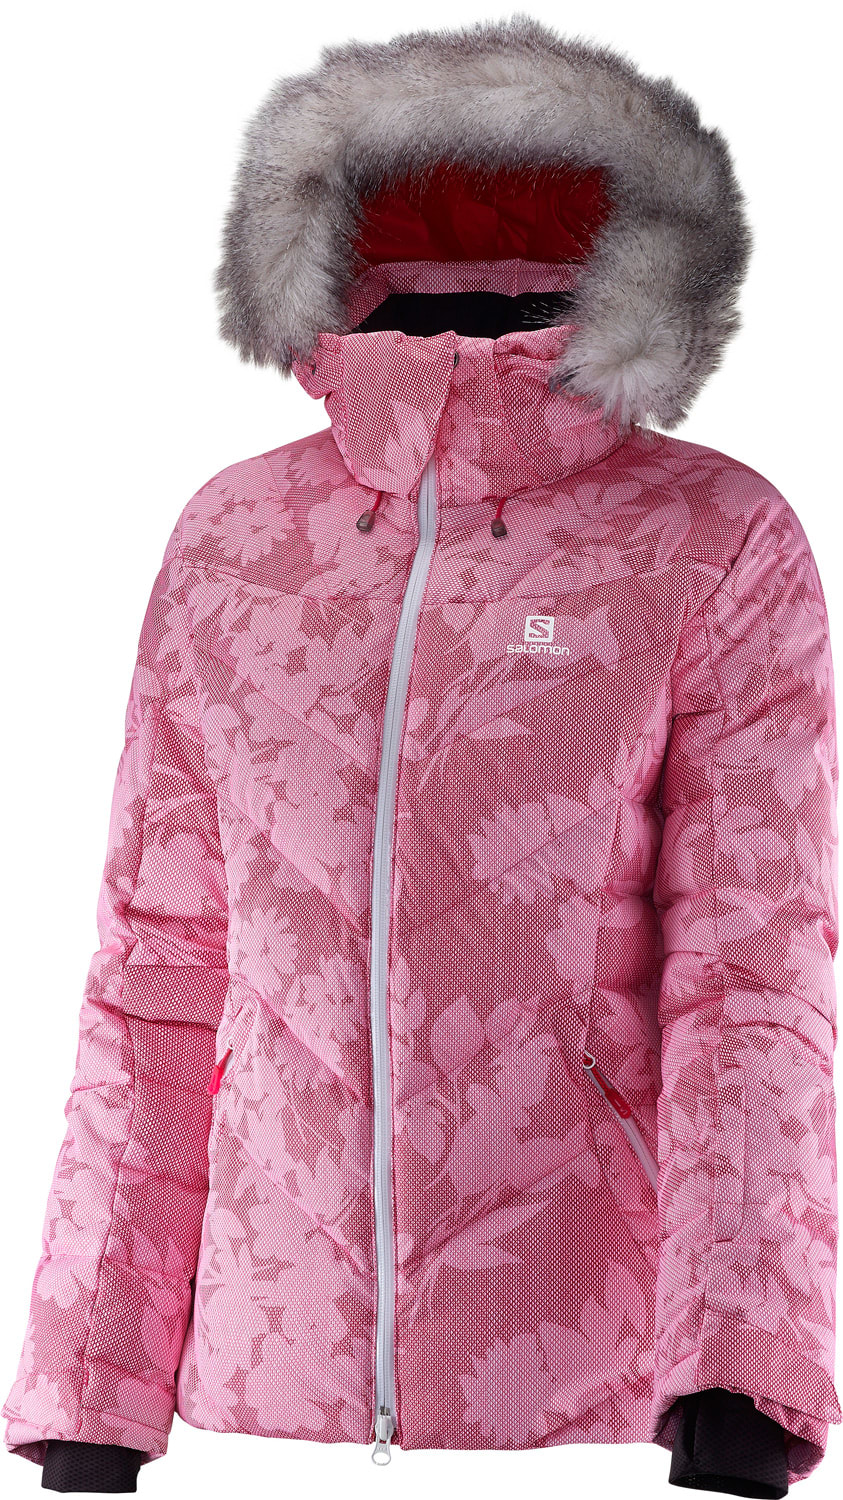 North Face Womens Down Jacket